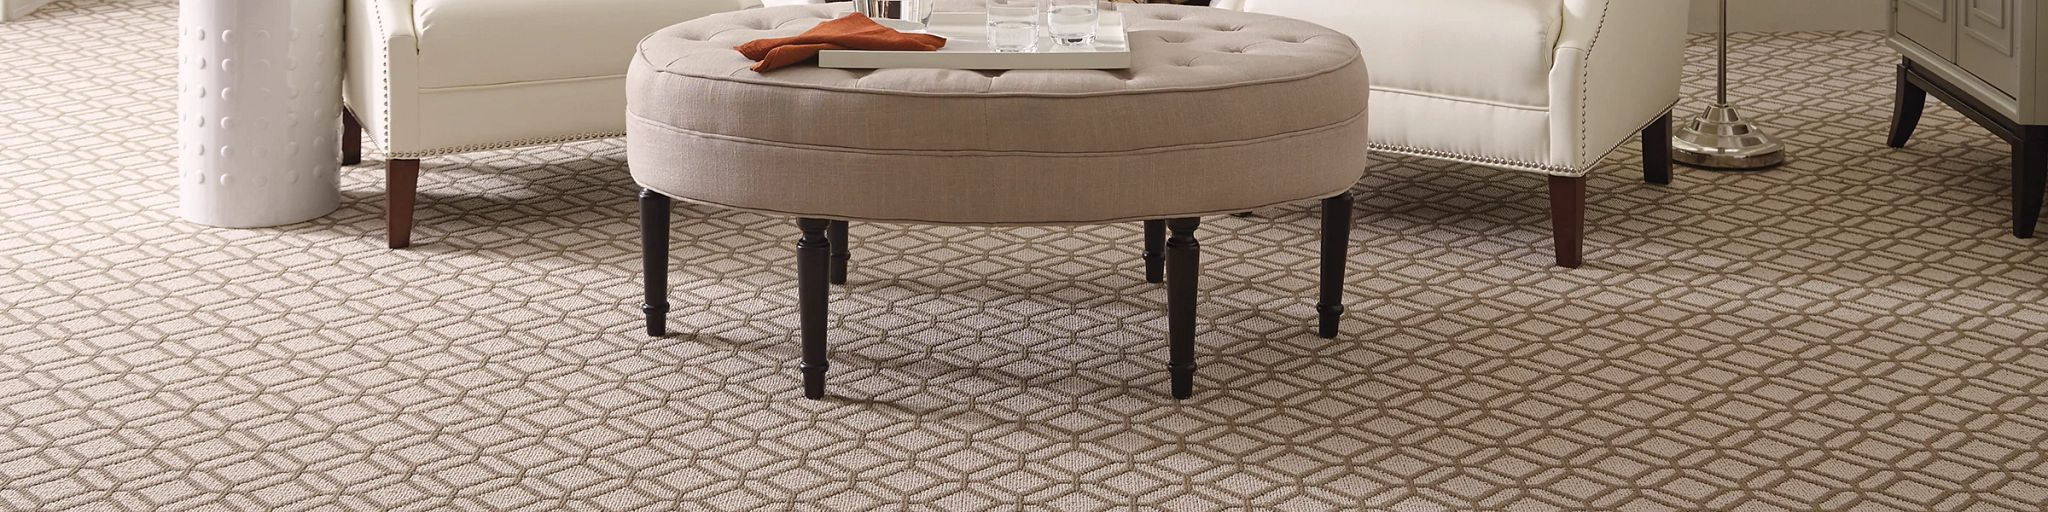 Carpet-Anderson-Tuftex-Loop-Casablanca-Z6898-00172-Aged-Ivory-Living-Room-2020